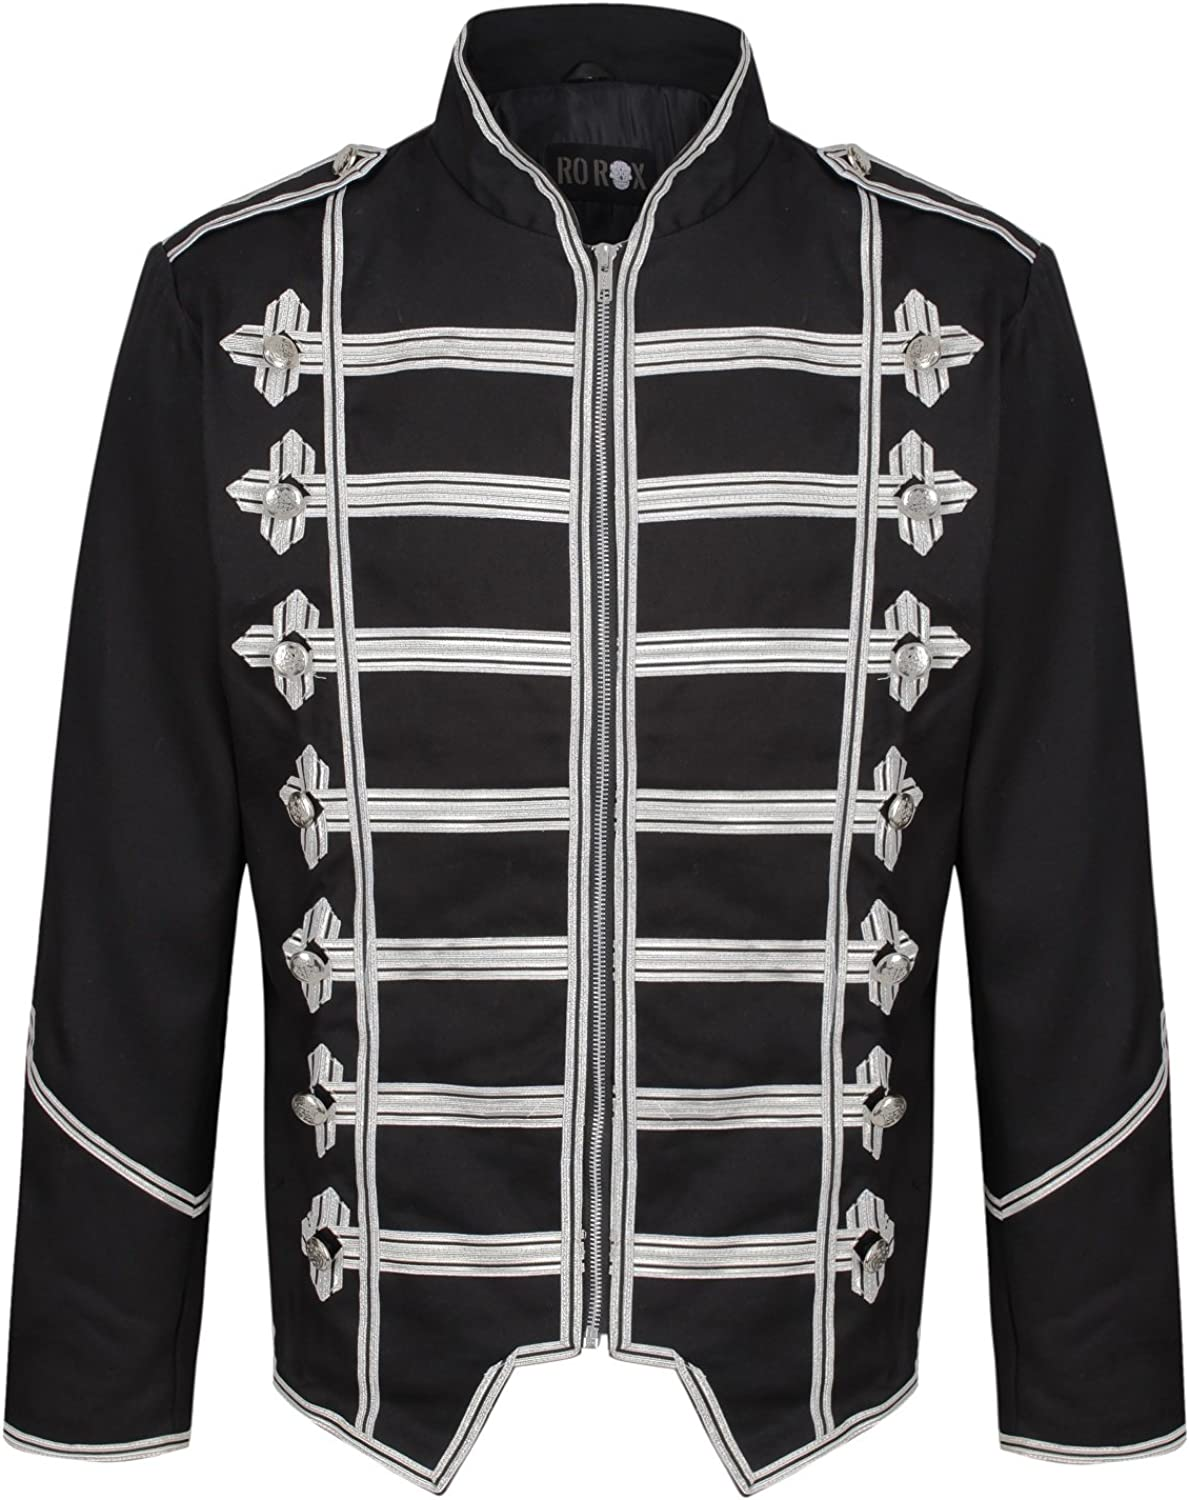 security Ro Rox Men's Steampunk Popular overseas Jacket Military Parade Gothic